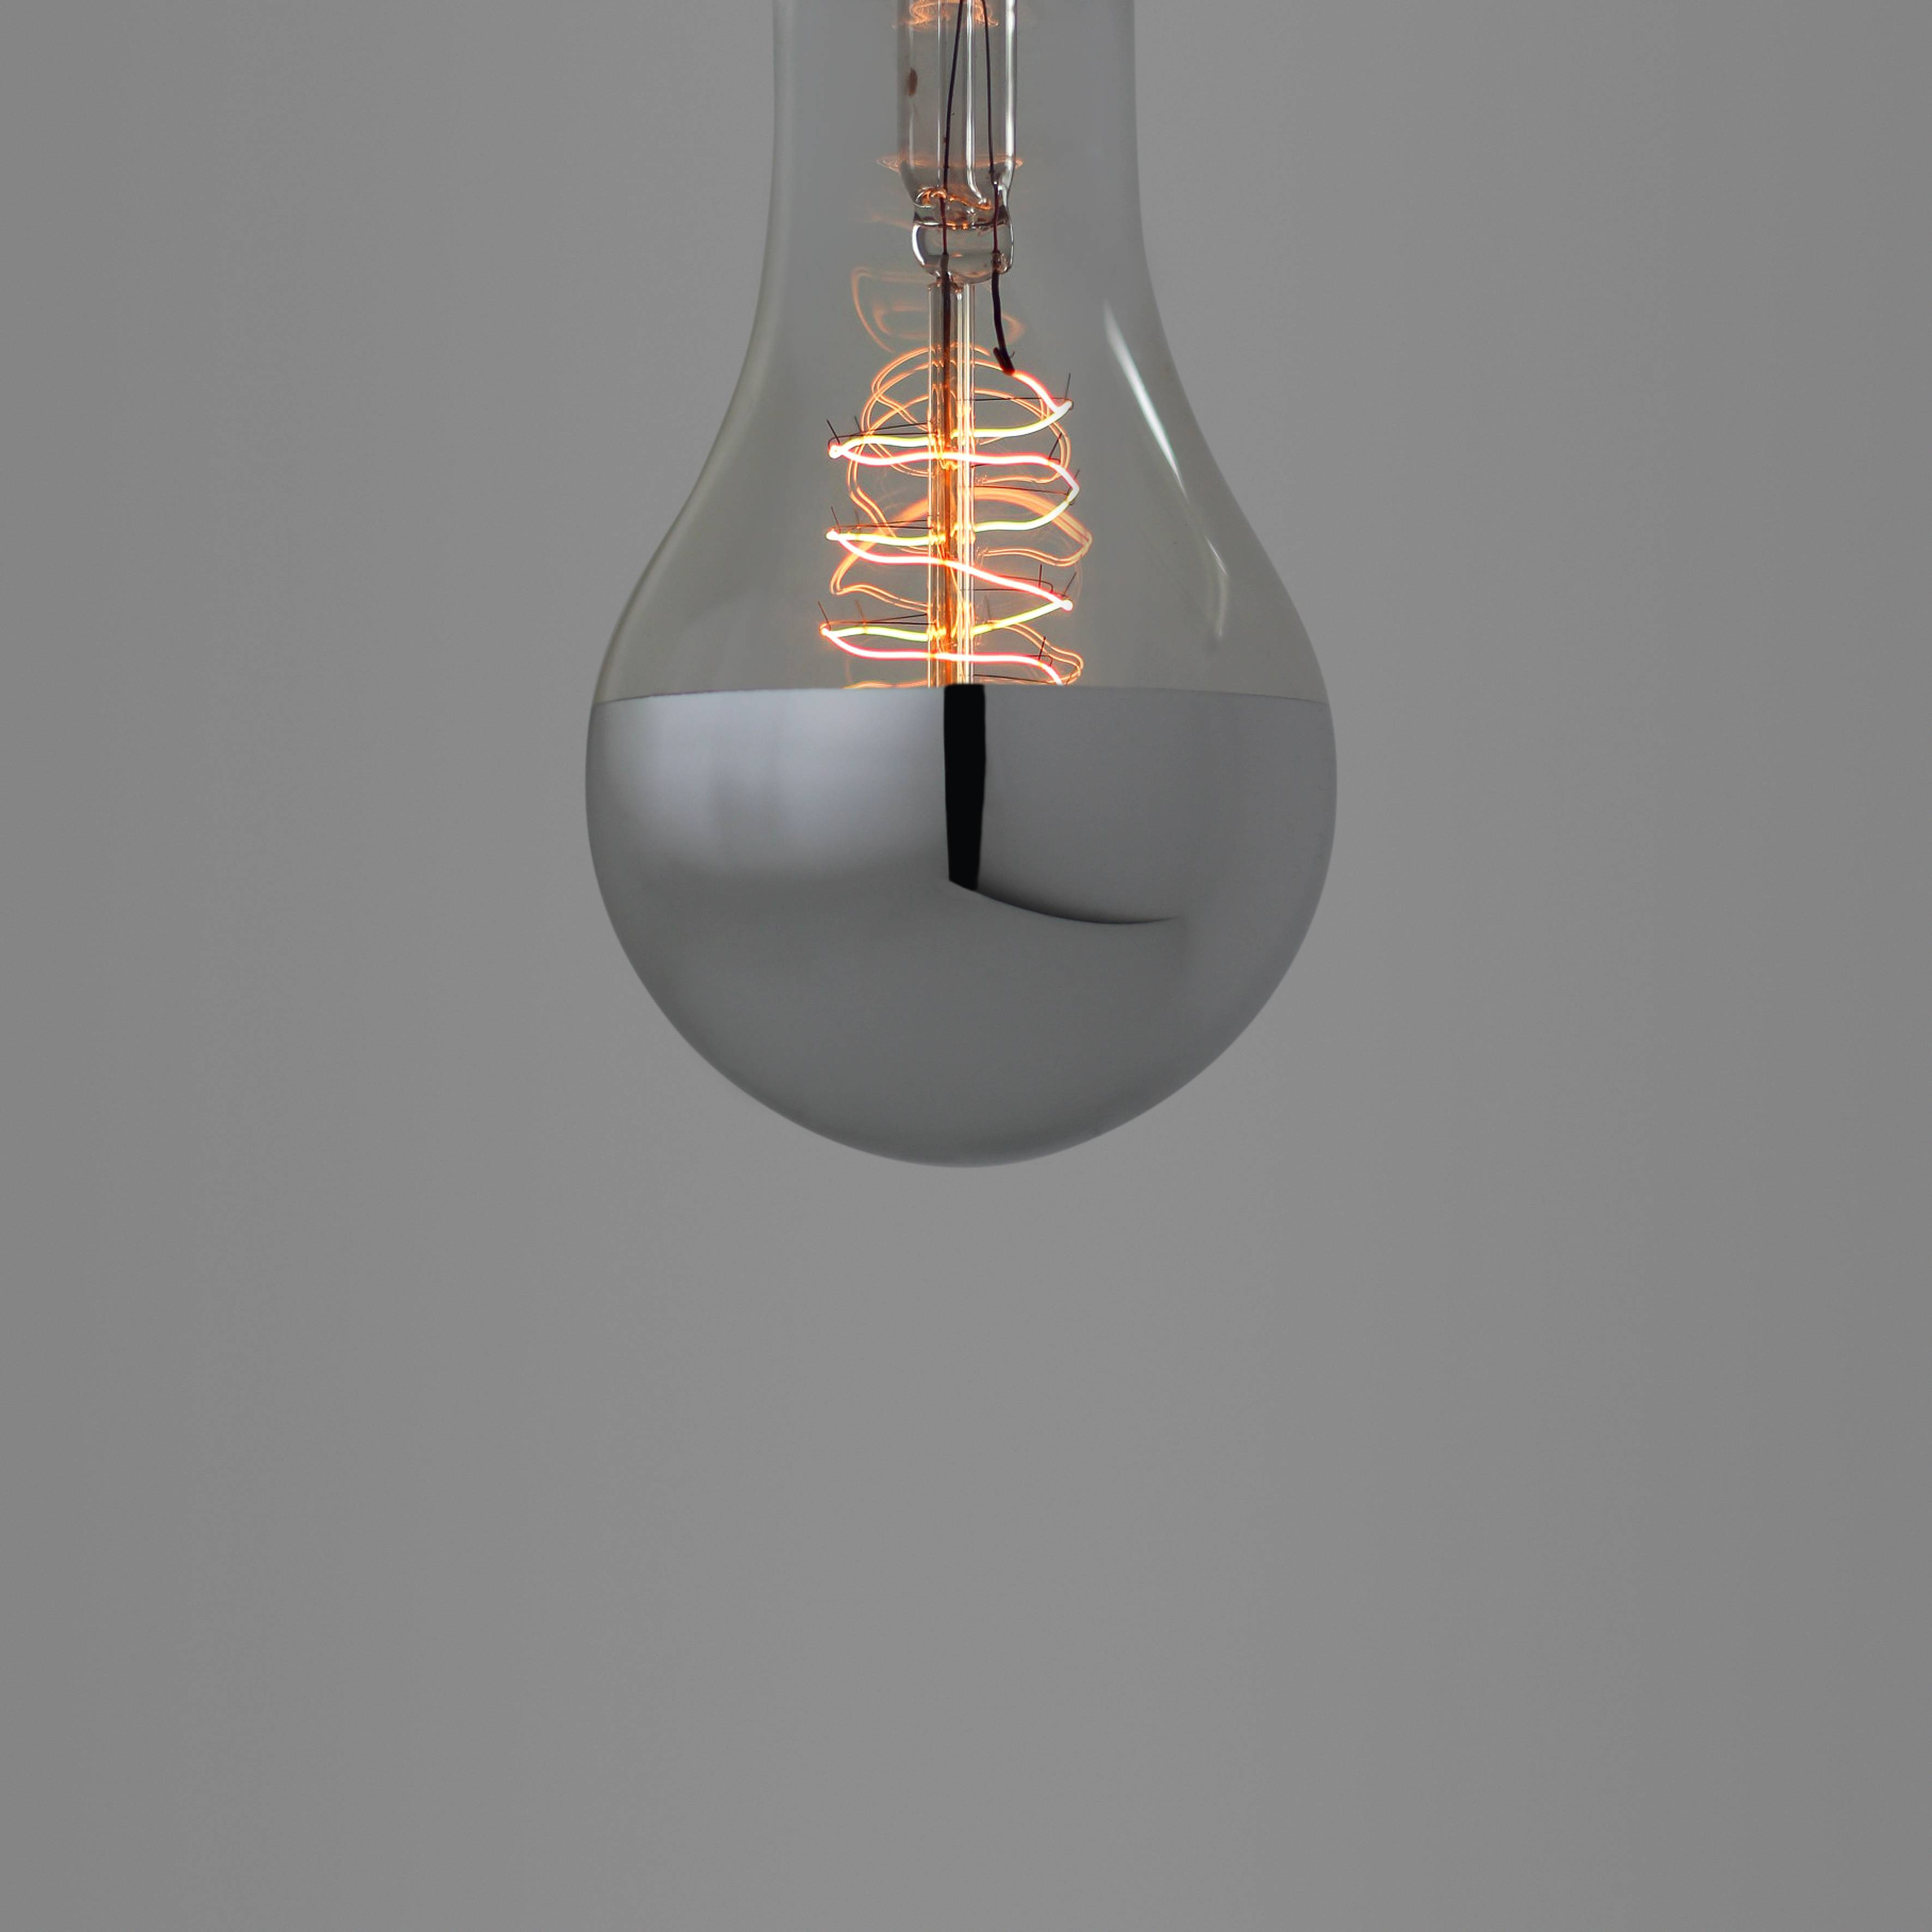 Nostalgia Lights Large Edison Spiral. Silver Cap. E27 | Nook Intended For Giant Lights Bulb Pendants (Photo 9 of 15)